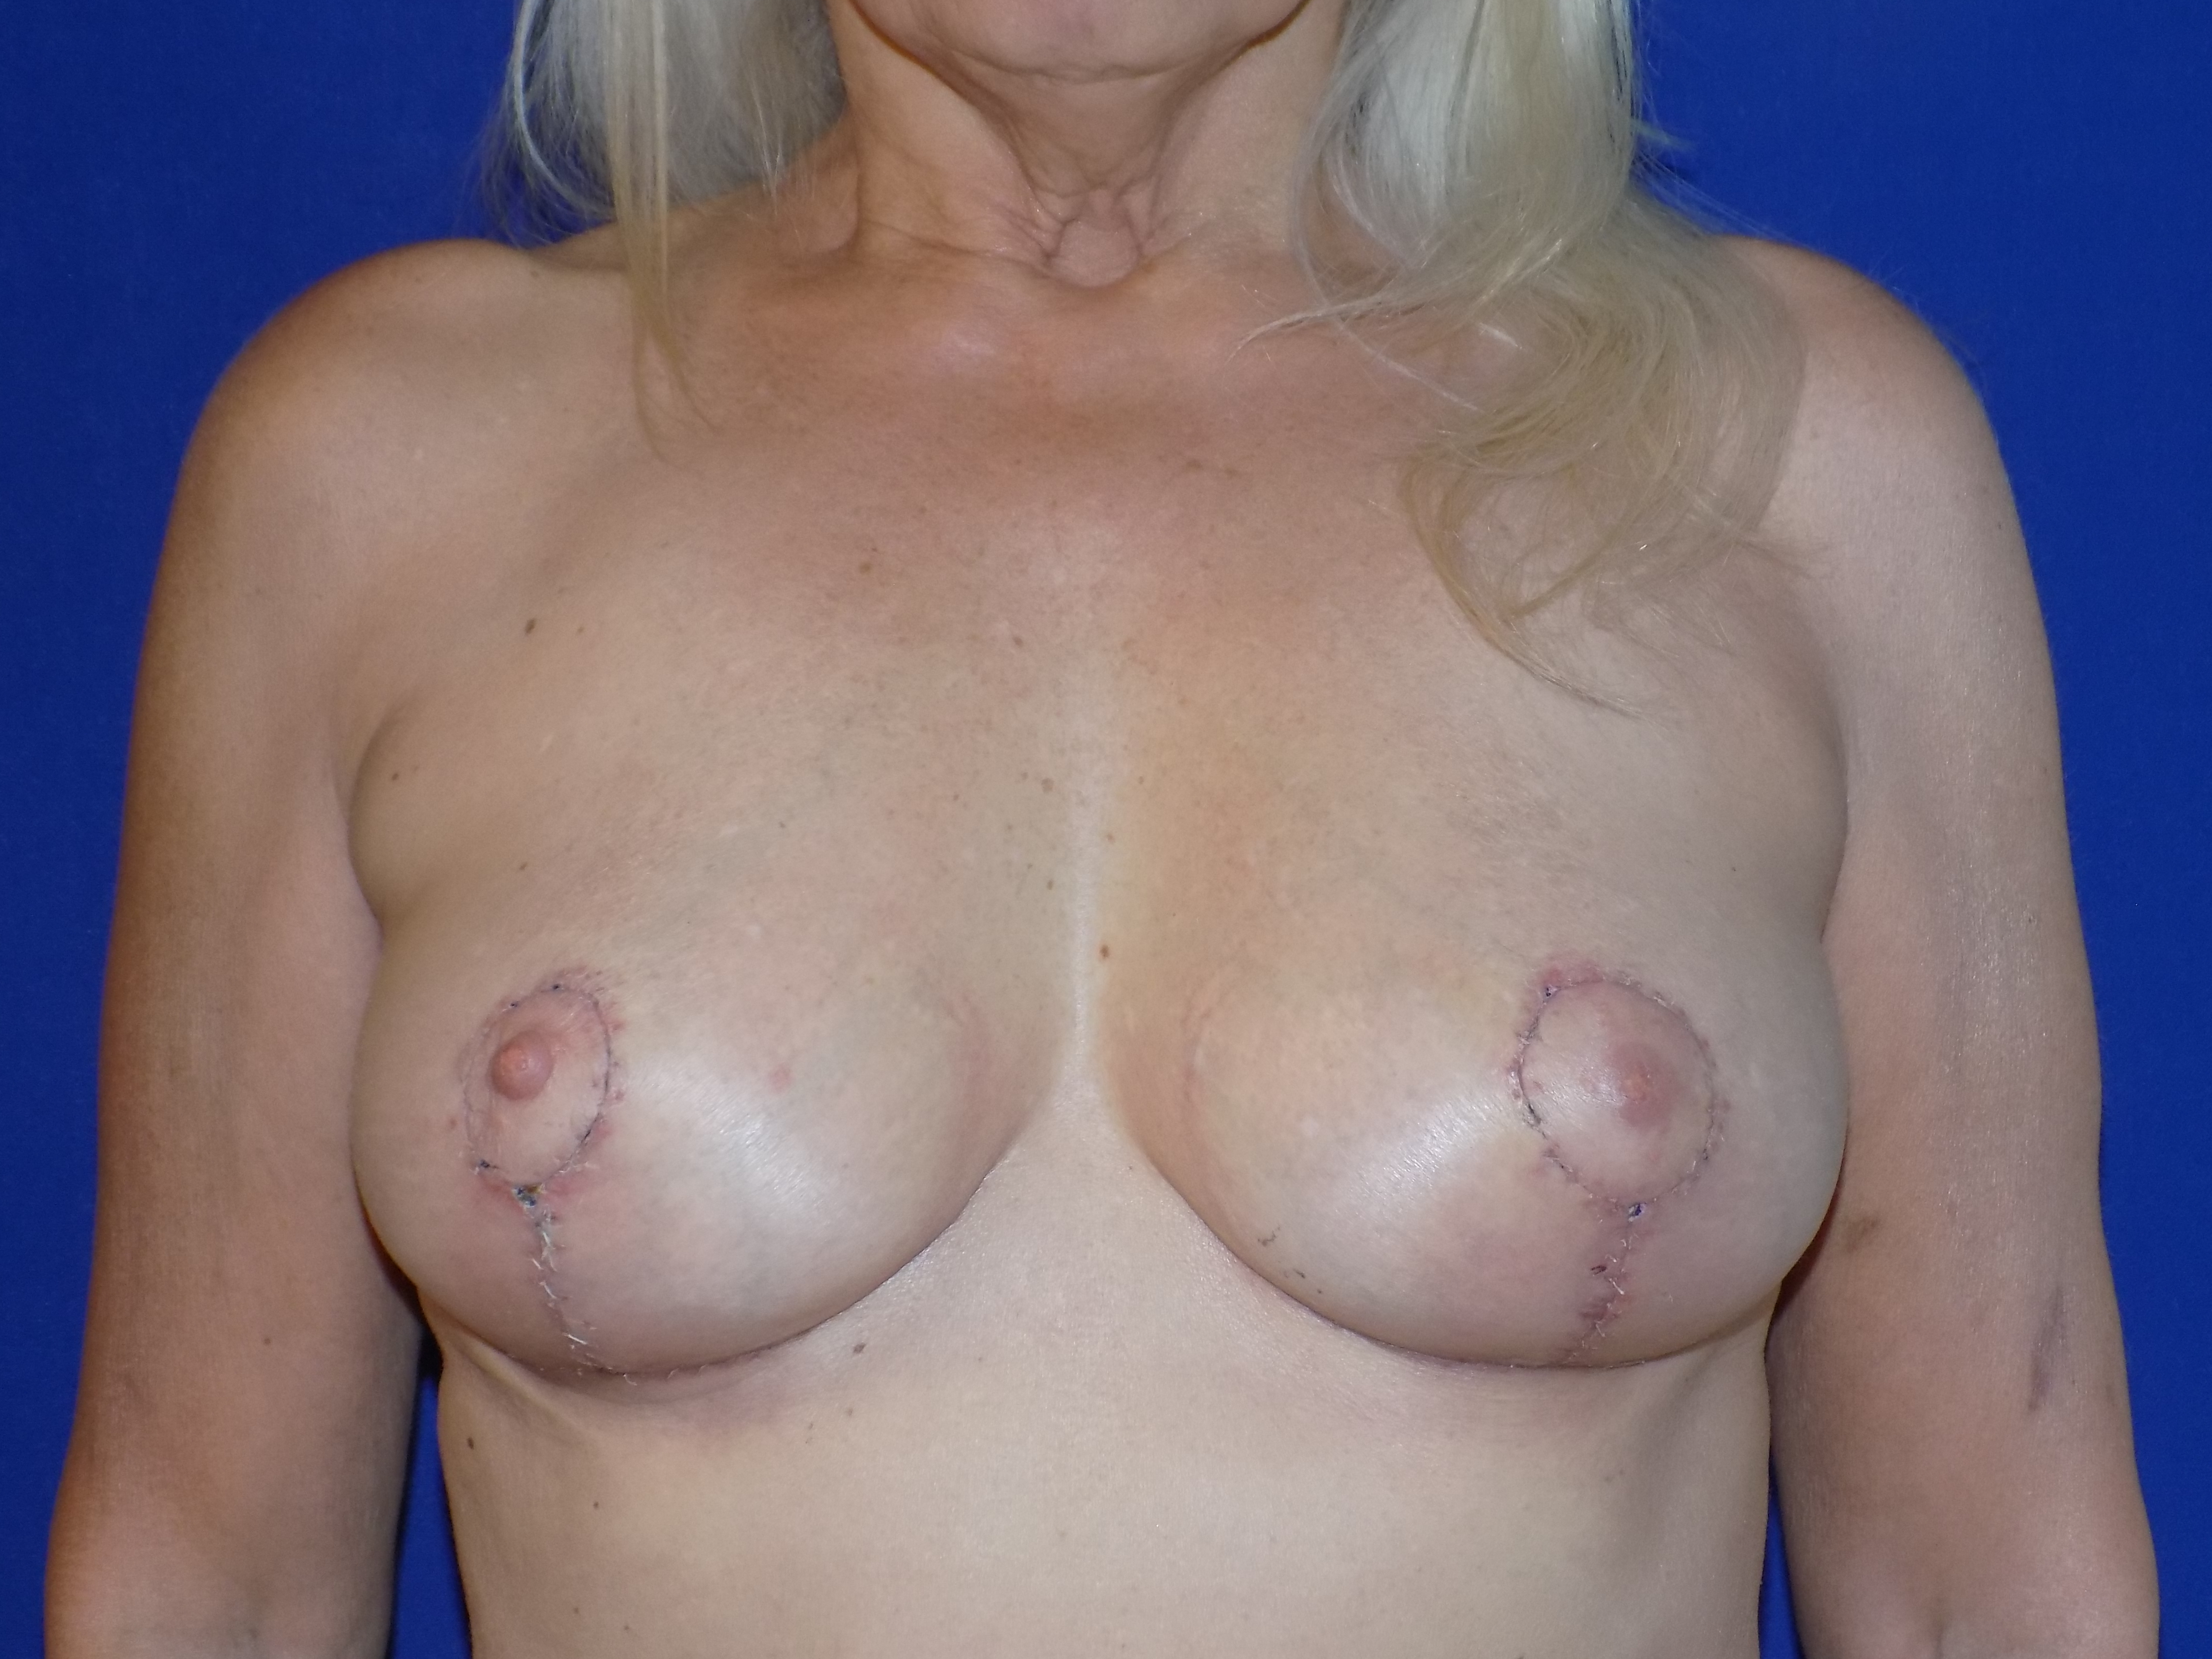 After-Breast Implant Remove and Lift